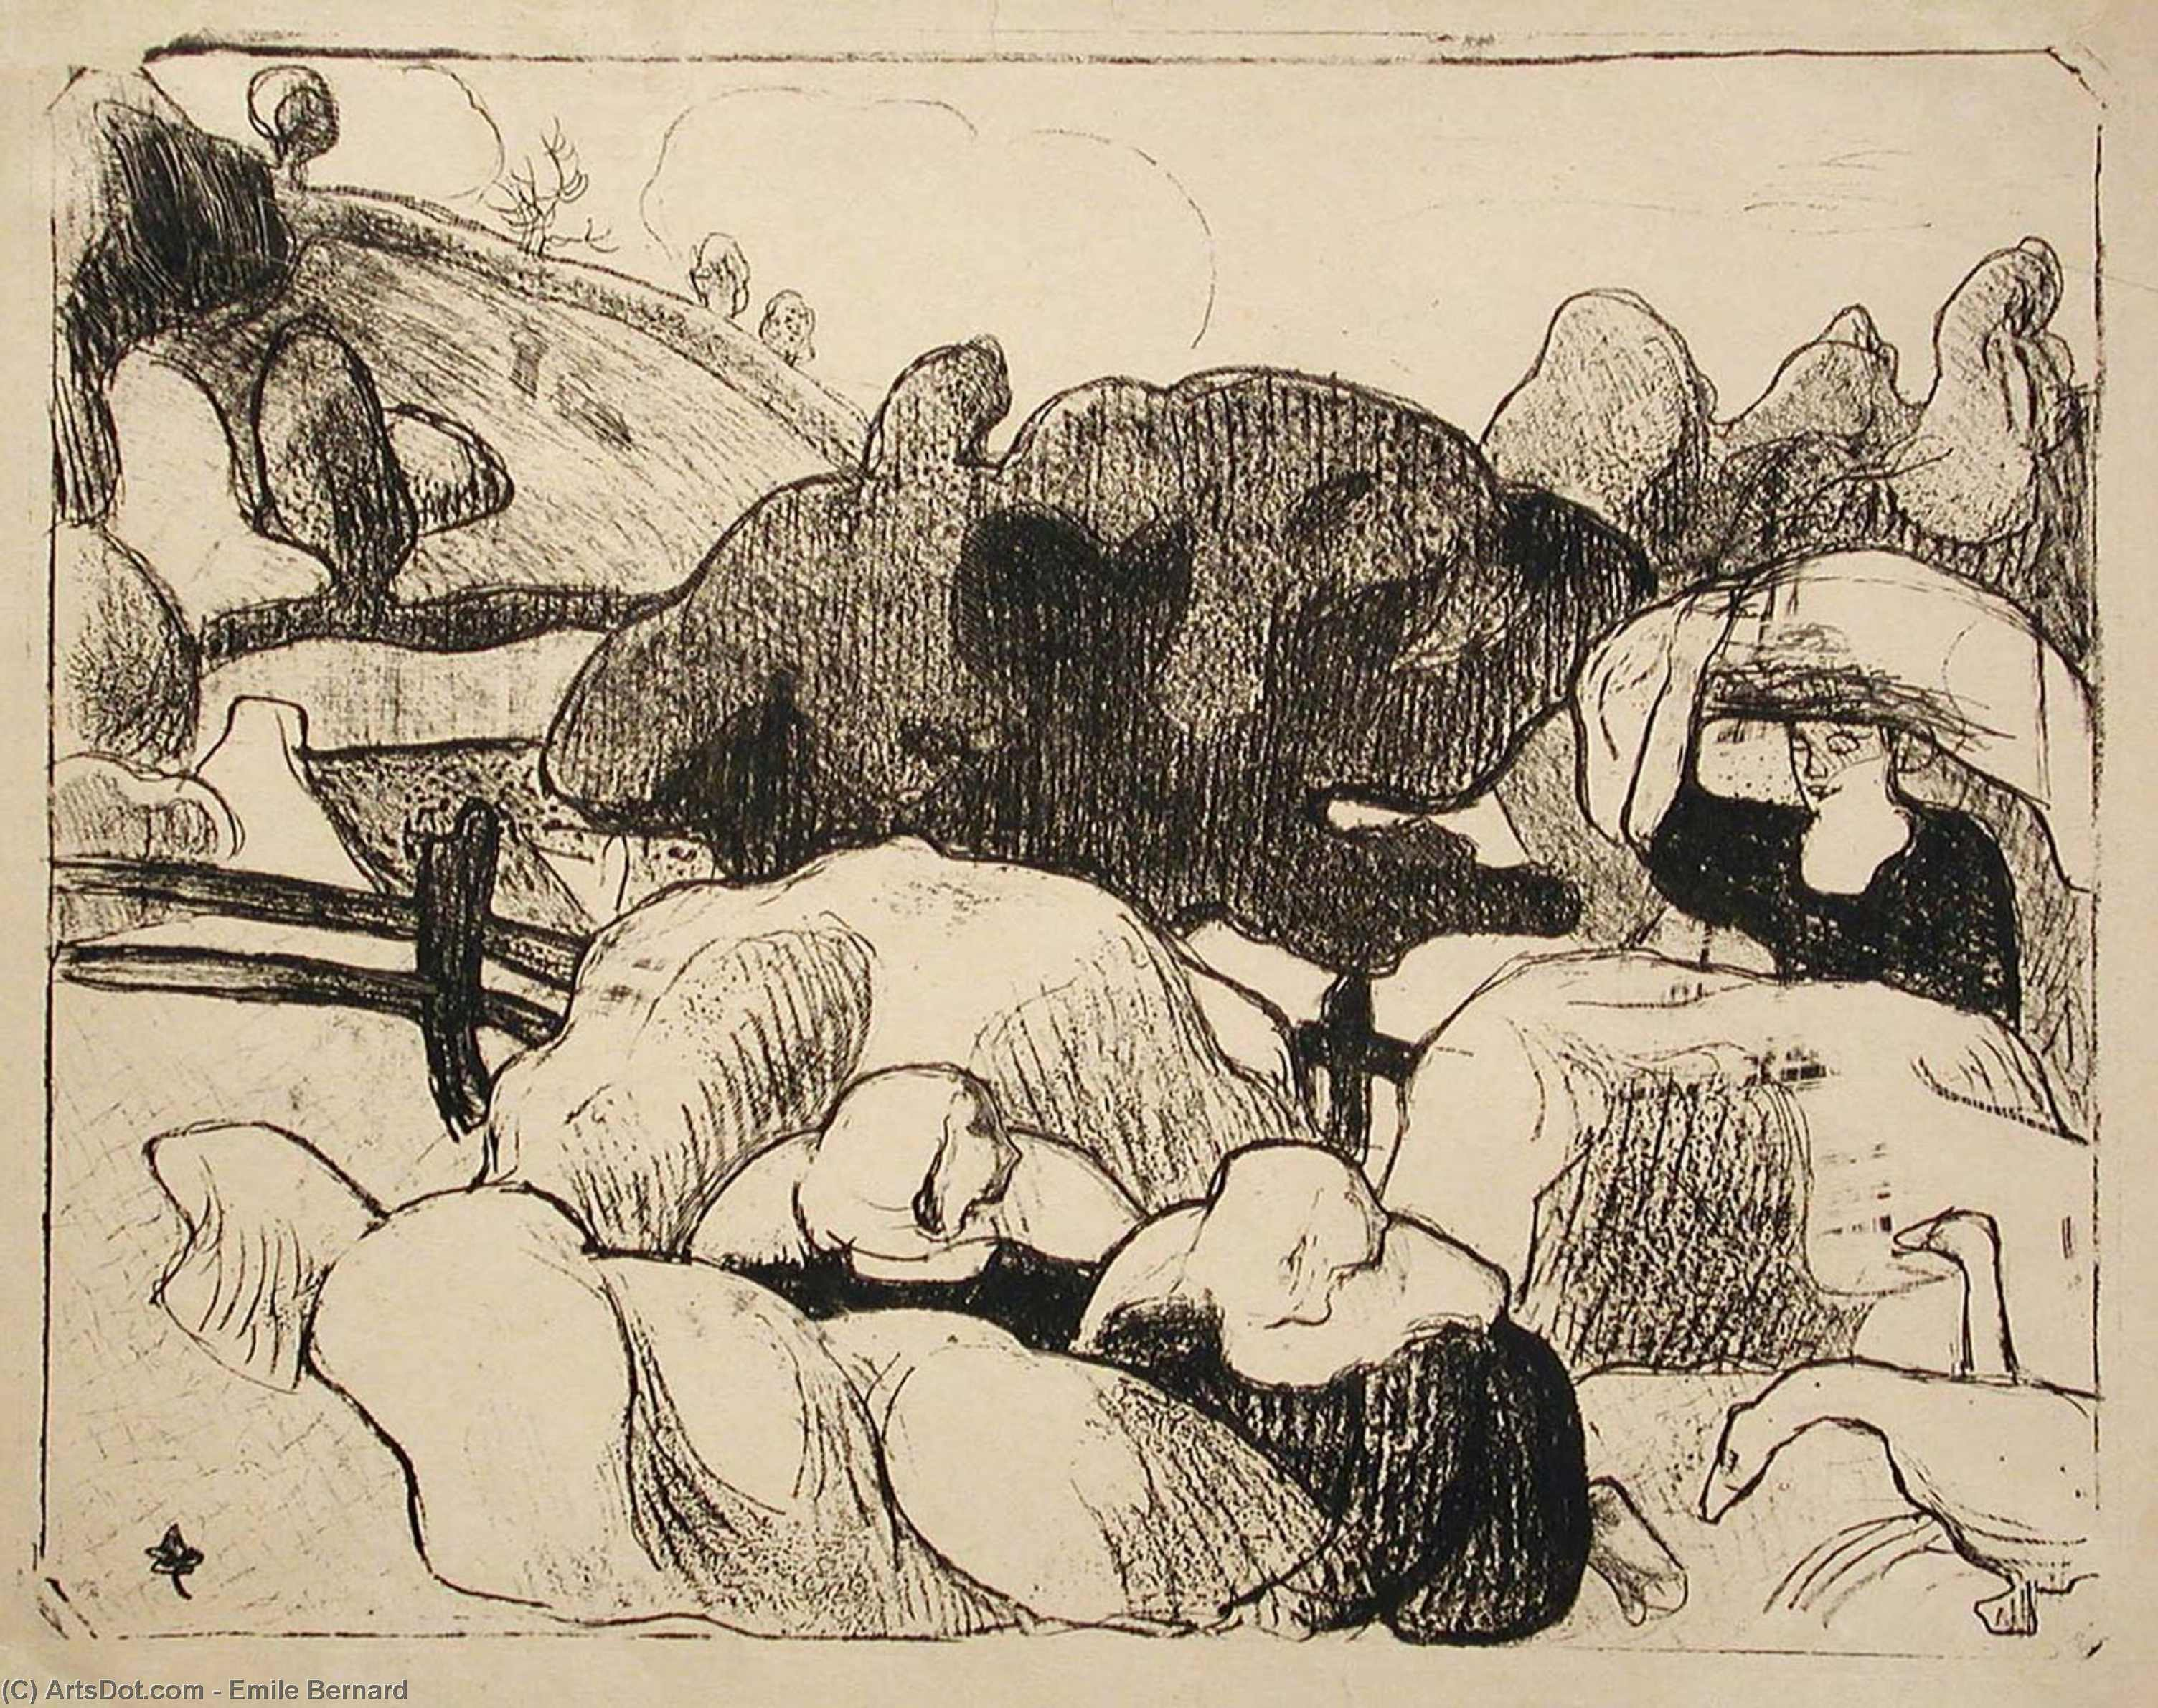 Femmes faisant les foins (Women Making Haystacks) by Emile Bernard (1868-1941, France)